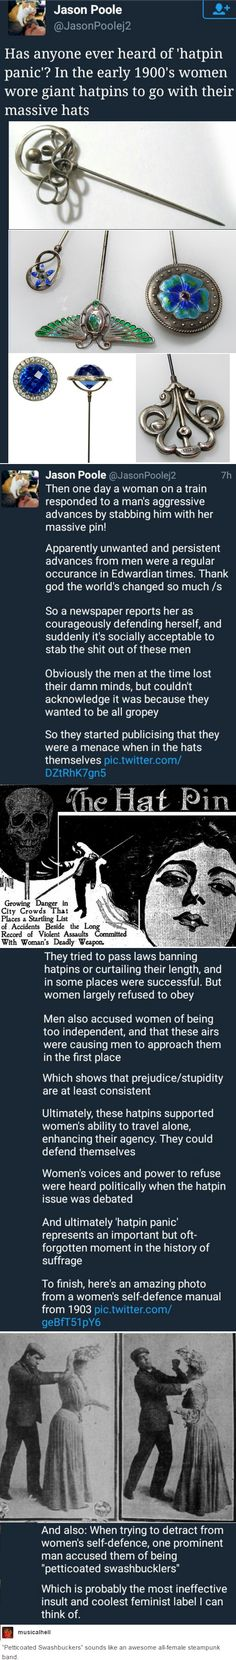 hatpin panic--apparently men don't LIKE to be attacked. Fancy that, we don't either. Nice to see your solution to women fighting back against their assailants is to be 100% against them instead of telling men to stop.